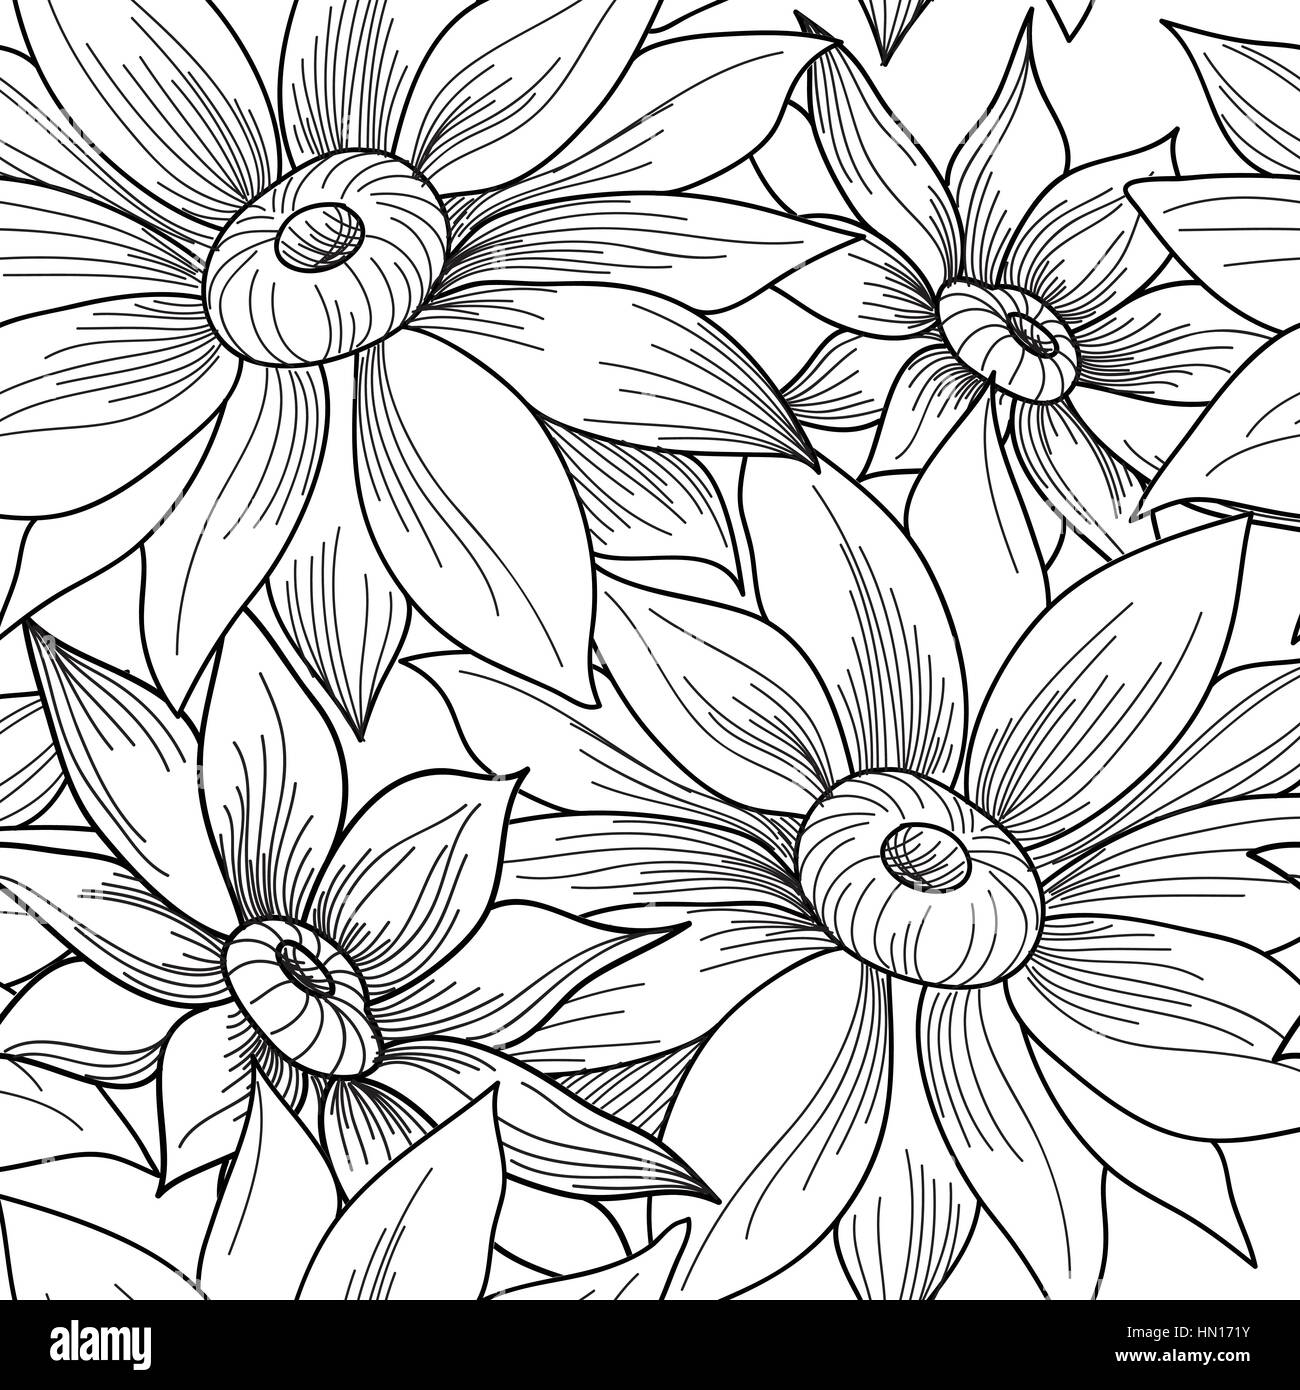 Floral Seamless Pattern Flower Engraving Background Ornamental Monohrome Texture With Flowers Spring Flourish Garden Etching